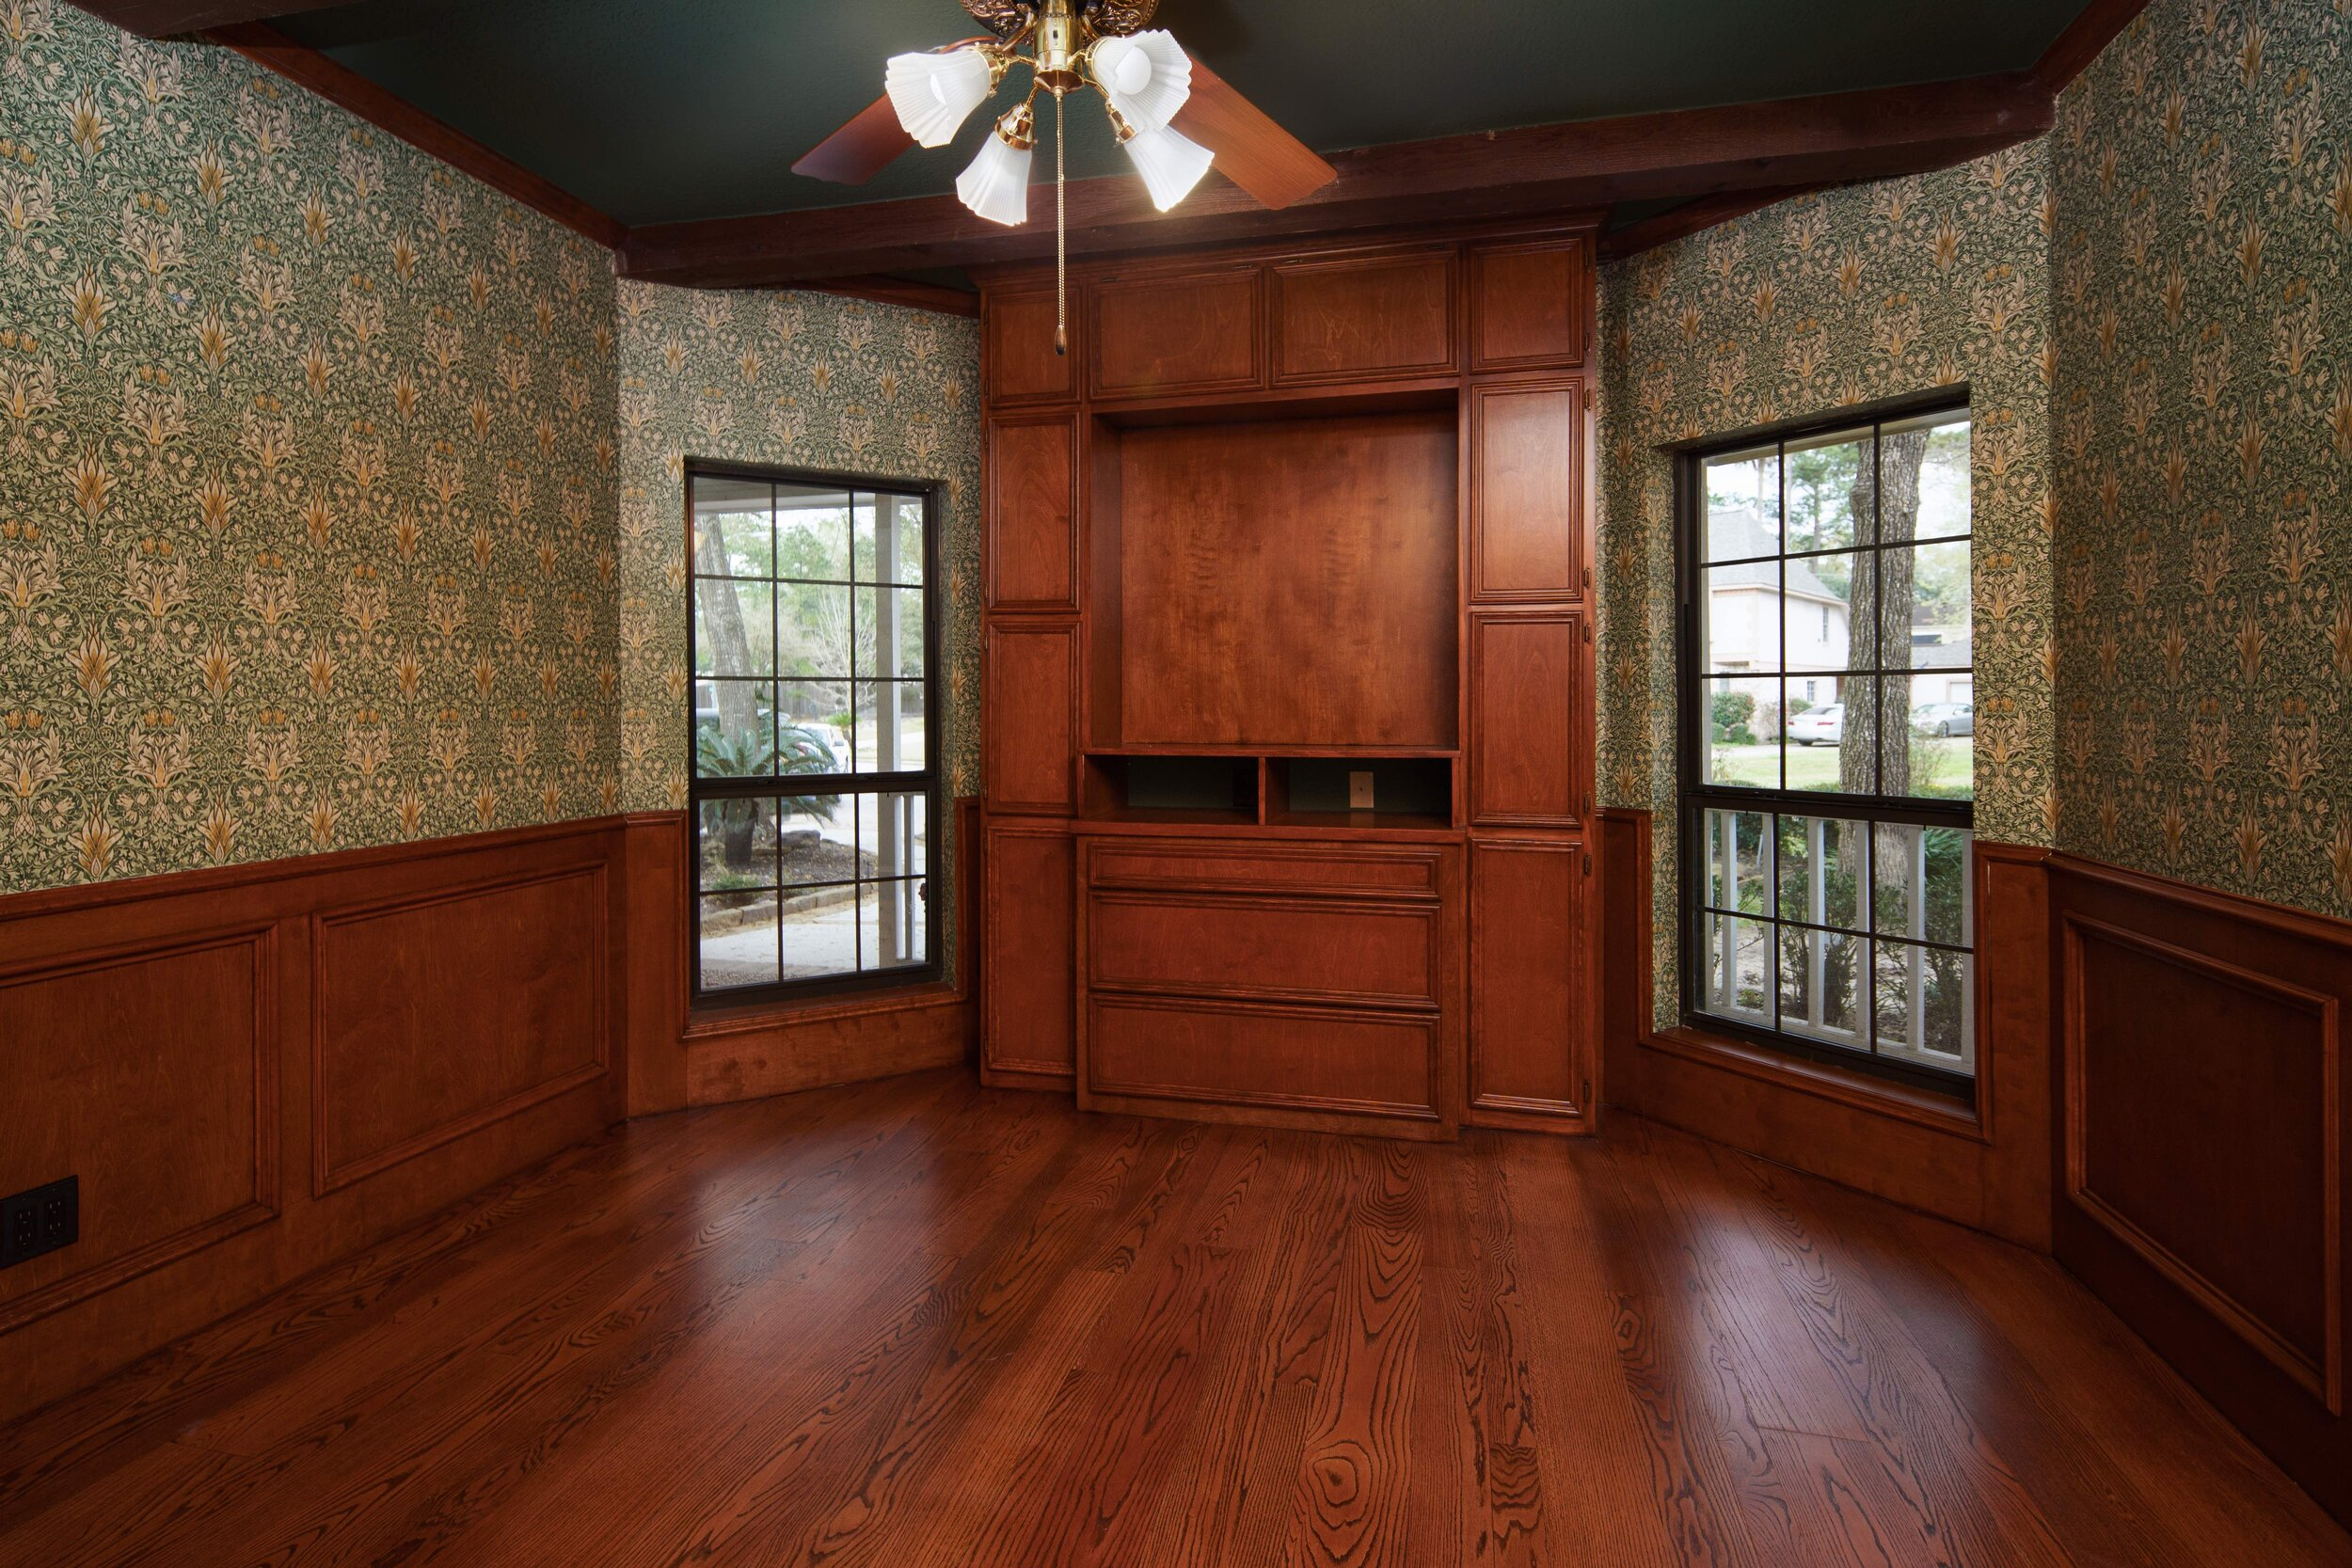 Full home restoration, full home renovation. The room features, custom built in cabinets, oak floors, wood stained trim. Office study renovation. intricate wall paper design perfect for this study.